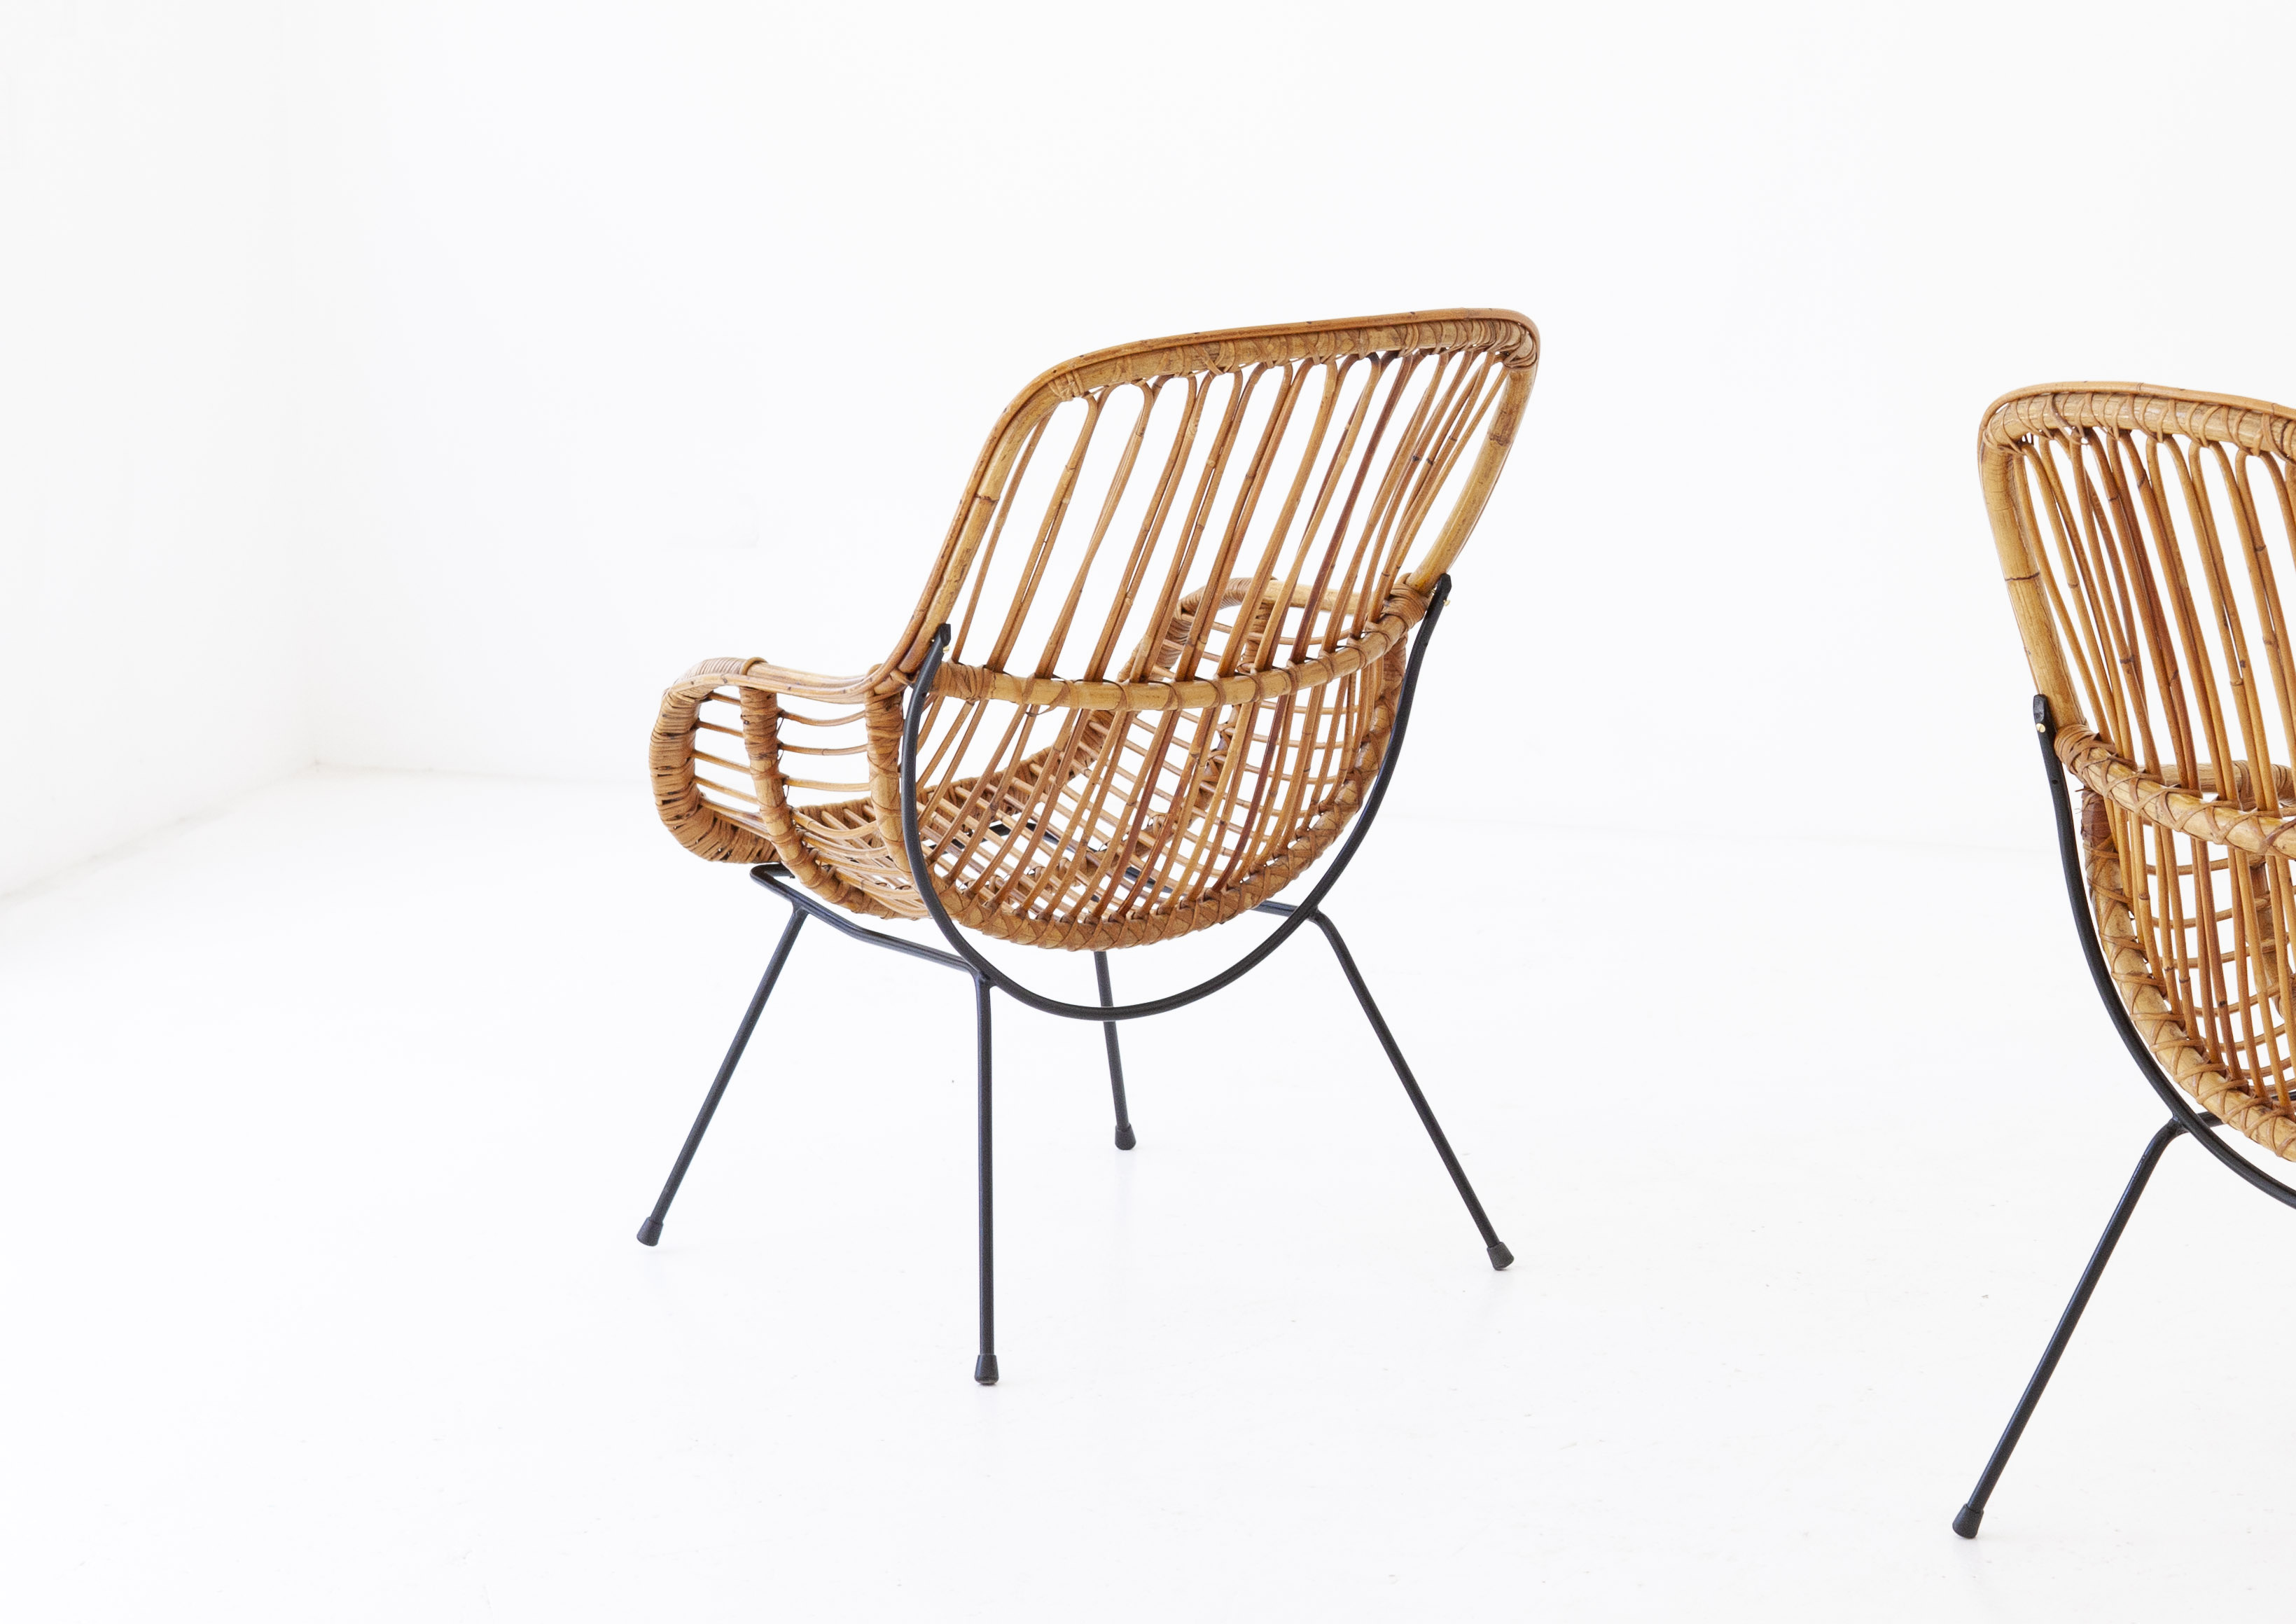 1950s-italian-iron-rattan-wicker-lounge-chairs-9-SE282